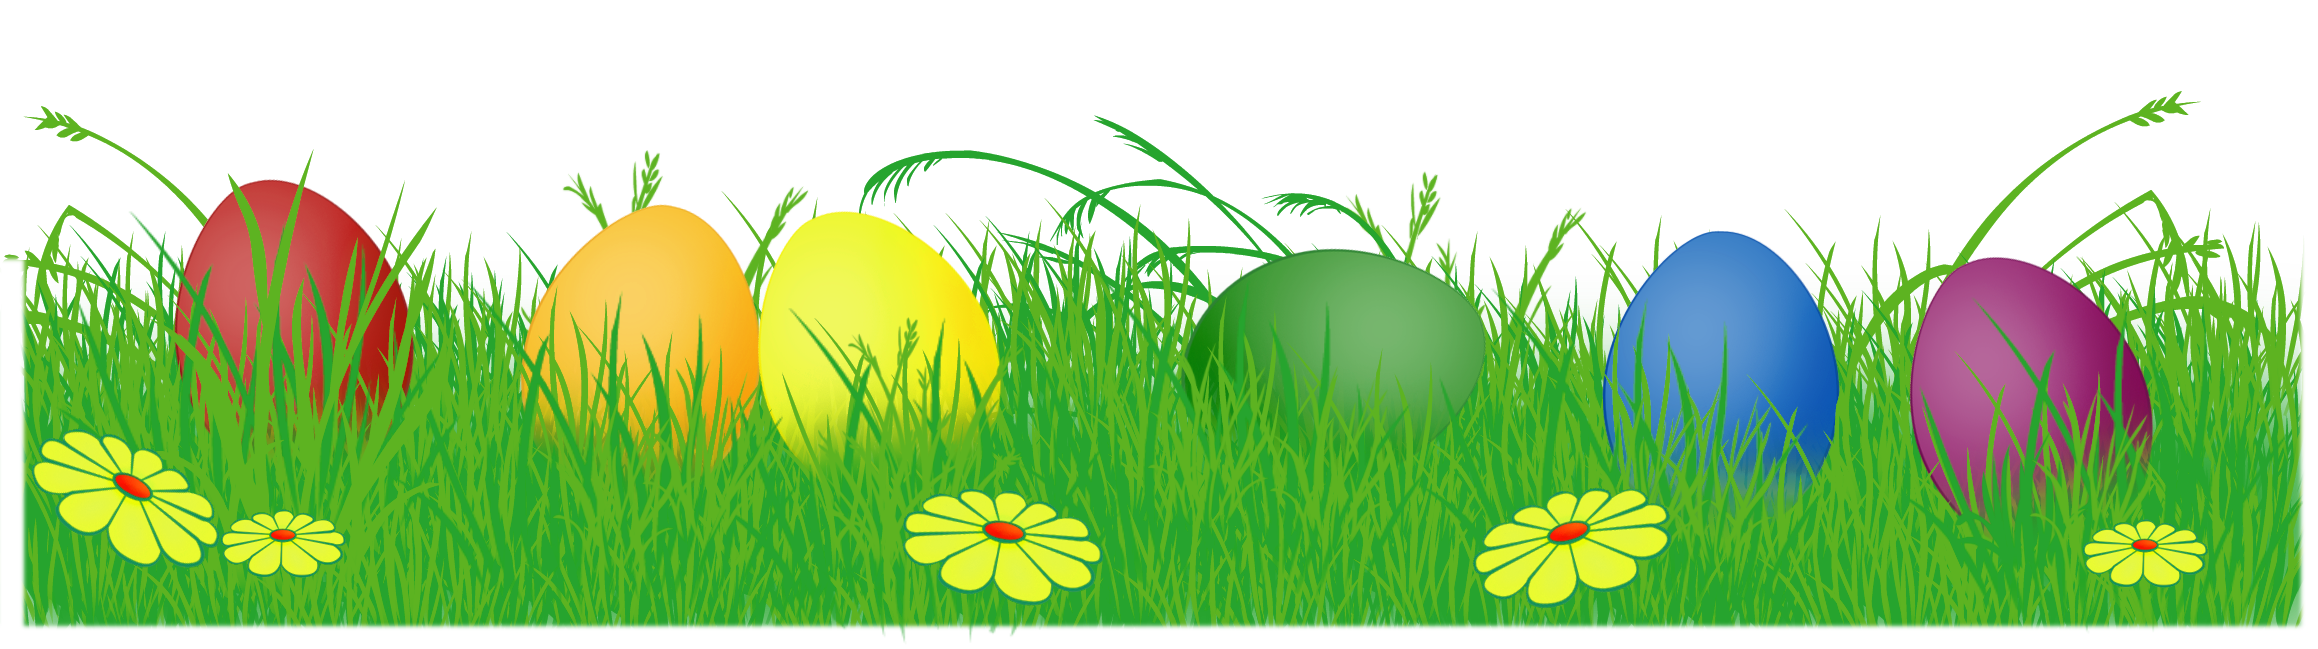 Easter border png. Eggs with grass clipart